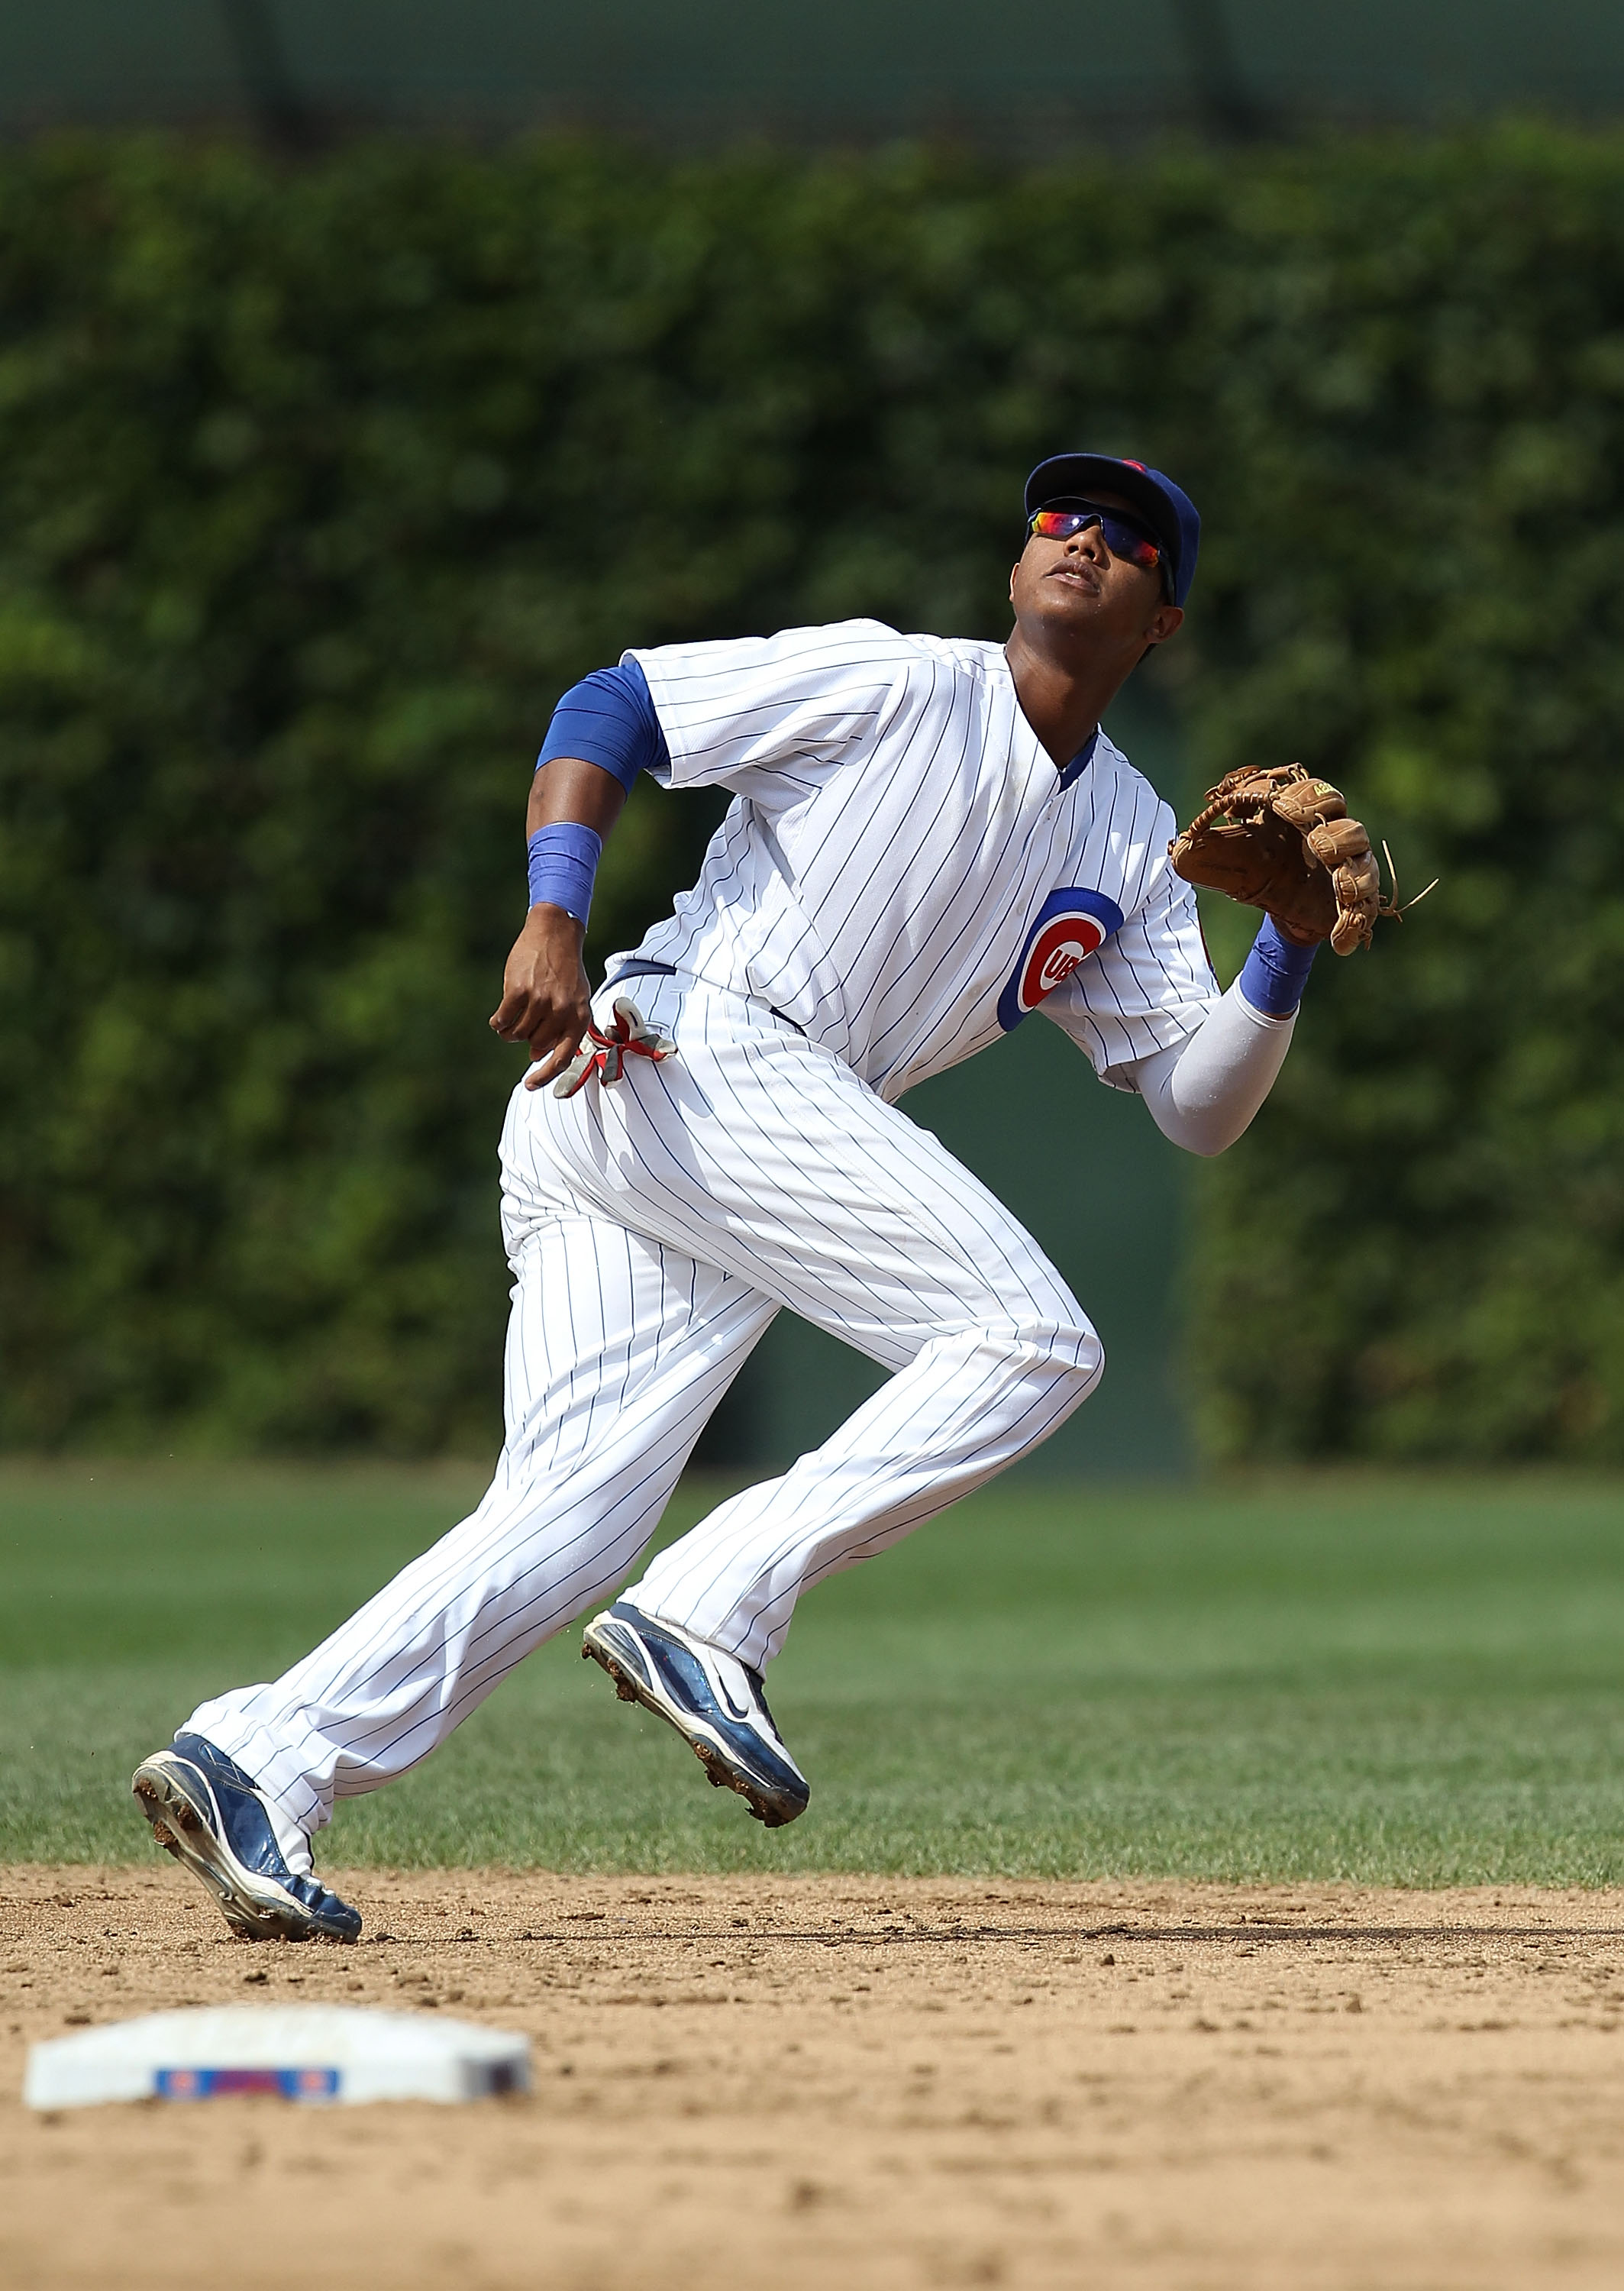 CHICAGO - SEPTEMBER 05: Starlin Castro #13 of the Chicago Cubs chases a fly ball against the New York Mets at Wrigley Field on September 5, 2010 in Chicago, Illinois. The Mets defeated the Cubs 18-5. (Photo by Jonathan Daniel/Getty Images)